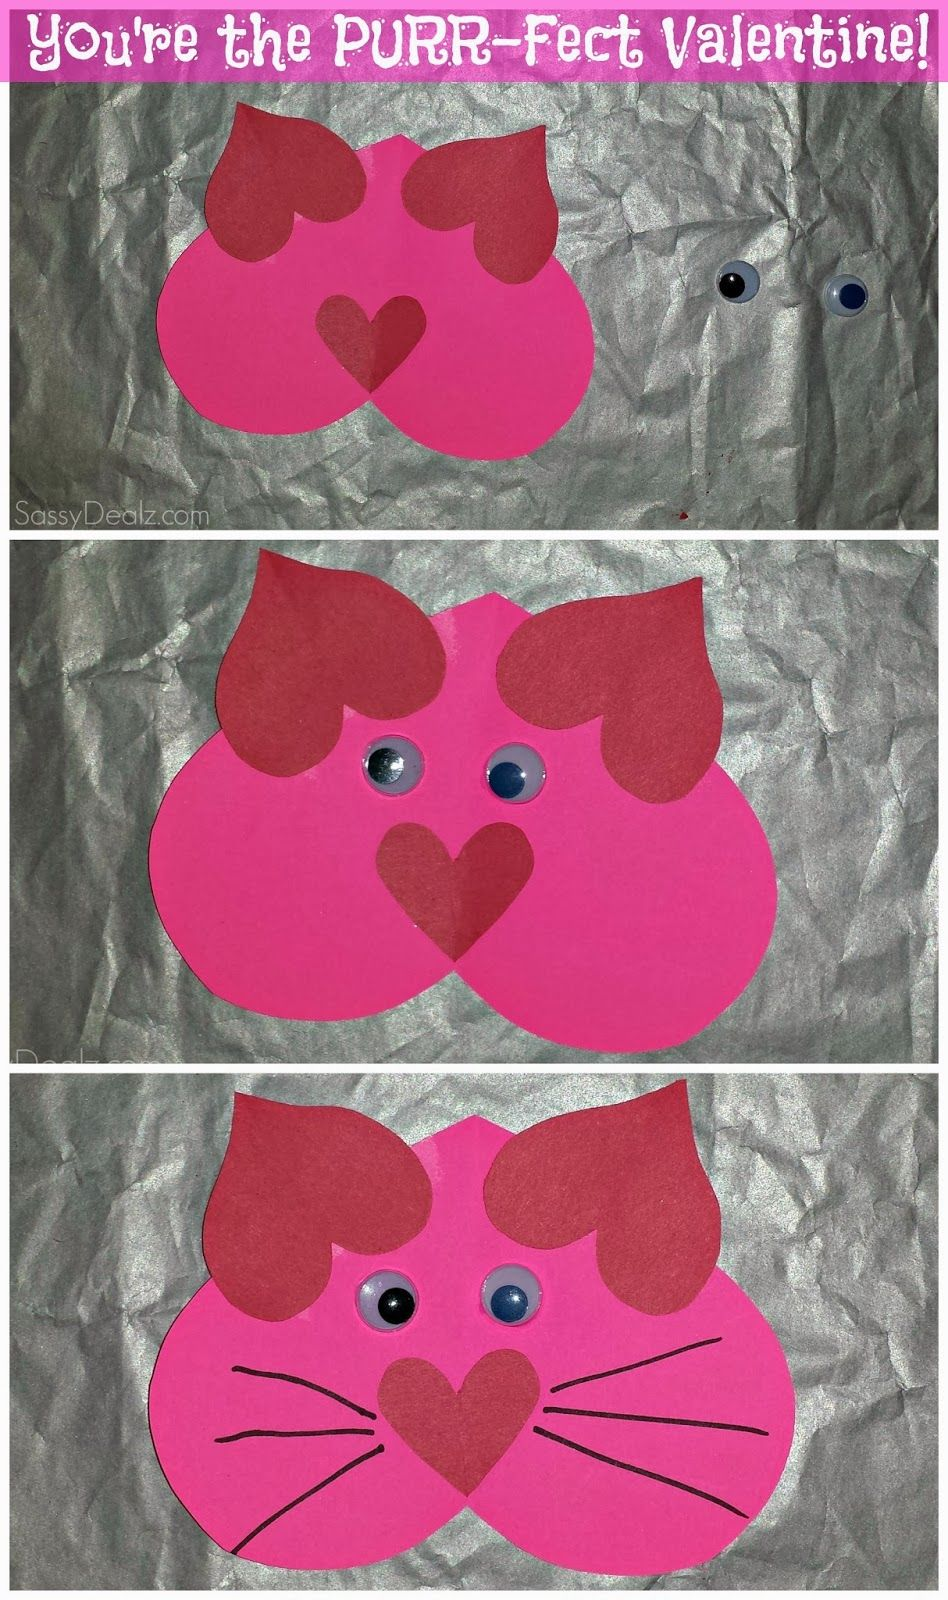 Valentine Heart Cat Craft For Kids - You're The PURR-Fect Valentine! - Crafty Morning